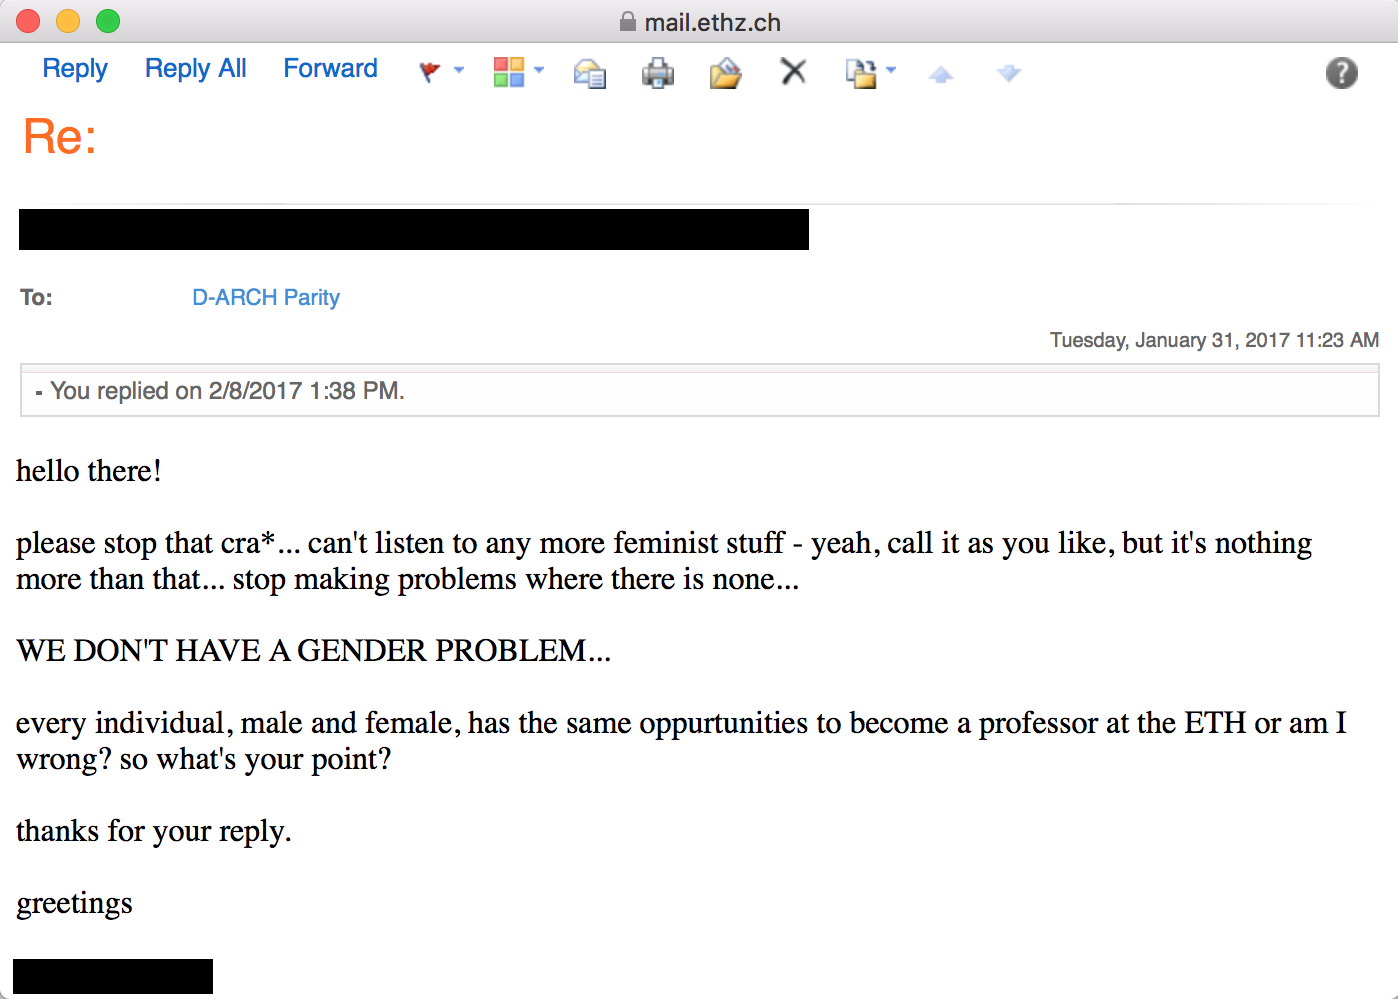 """Document 9, dated January 31, 2017 & February 8, 2017: e-mail correspondence """"WE DON'T HAVE A GENDER PROBLEM"""""""